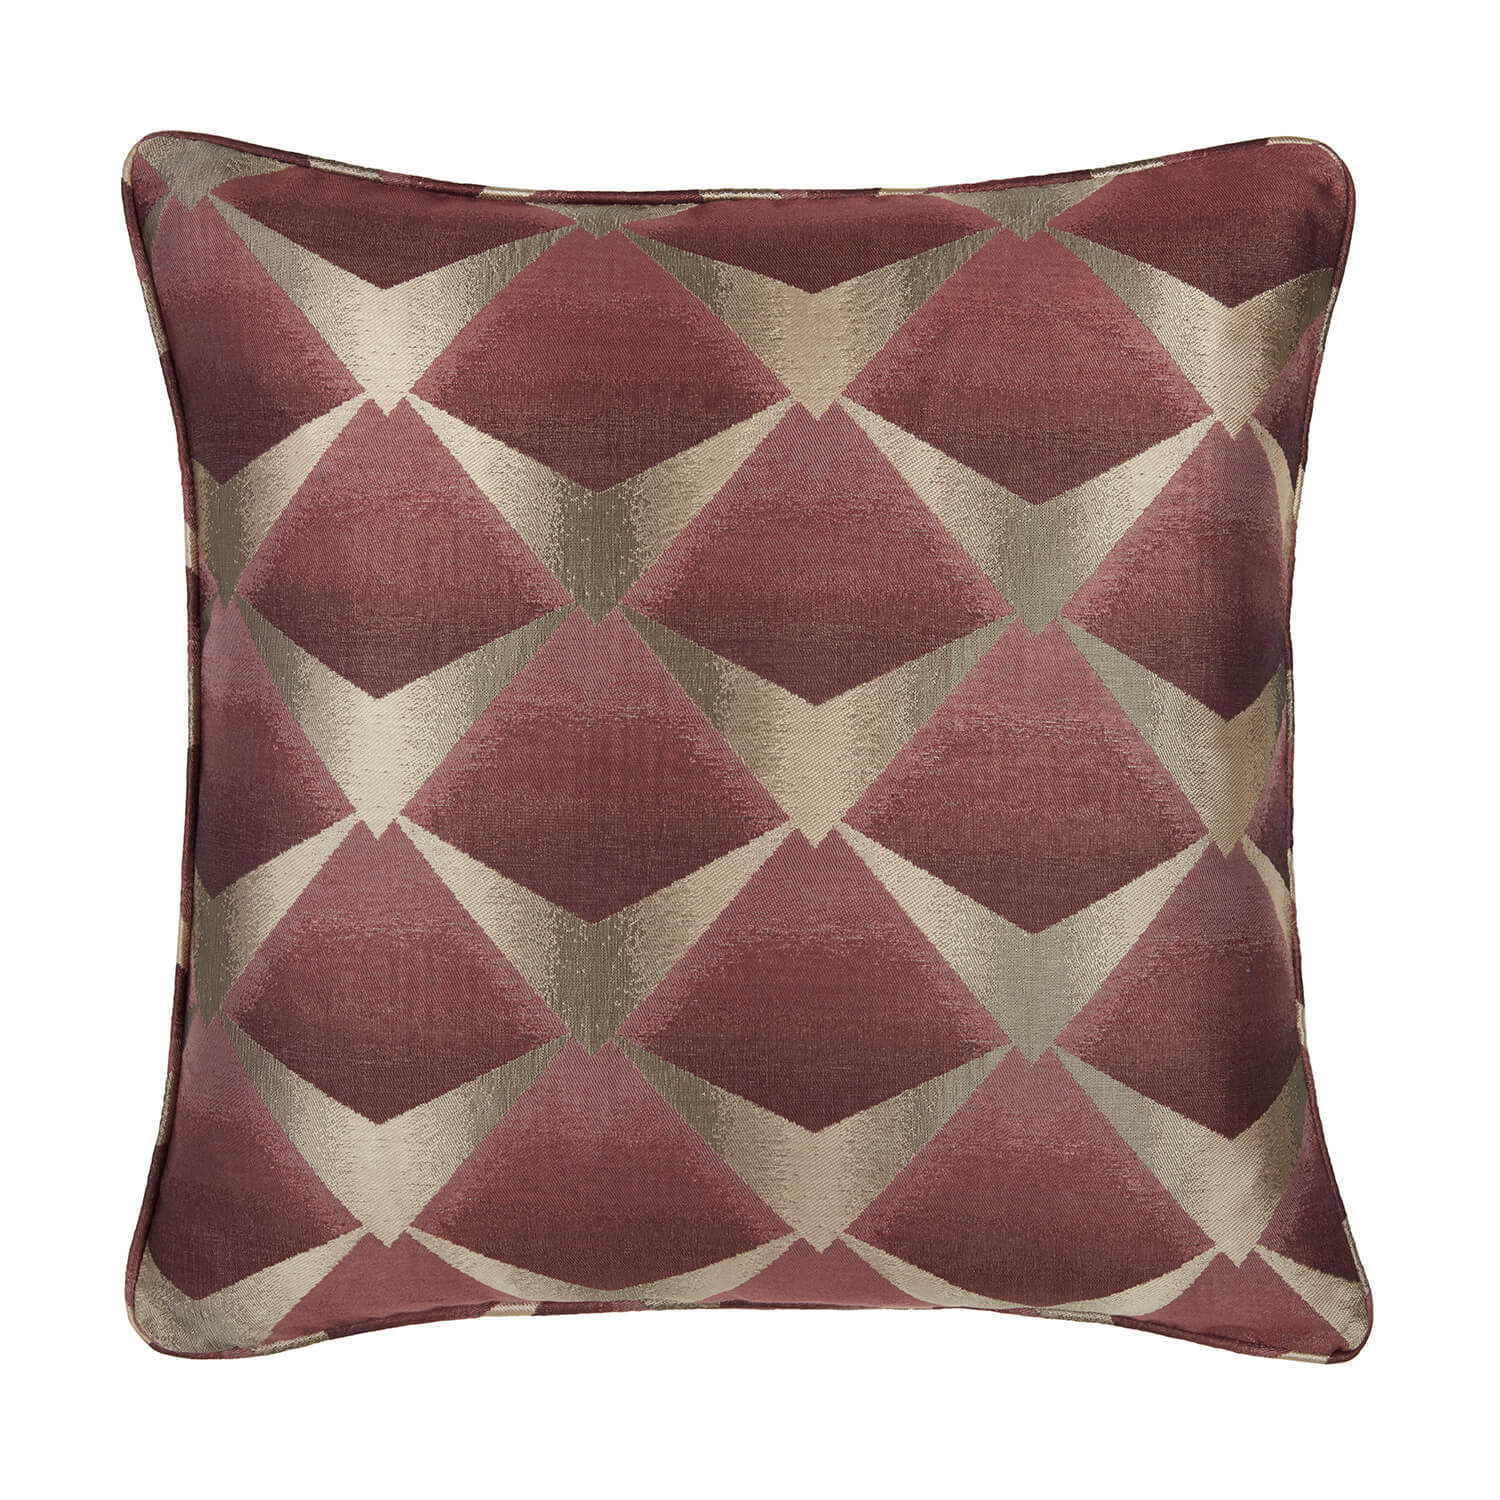 Deco Fan Cushion 58 x 58cm - Wine